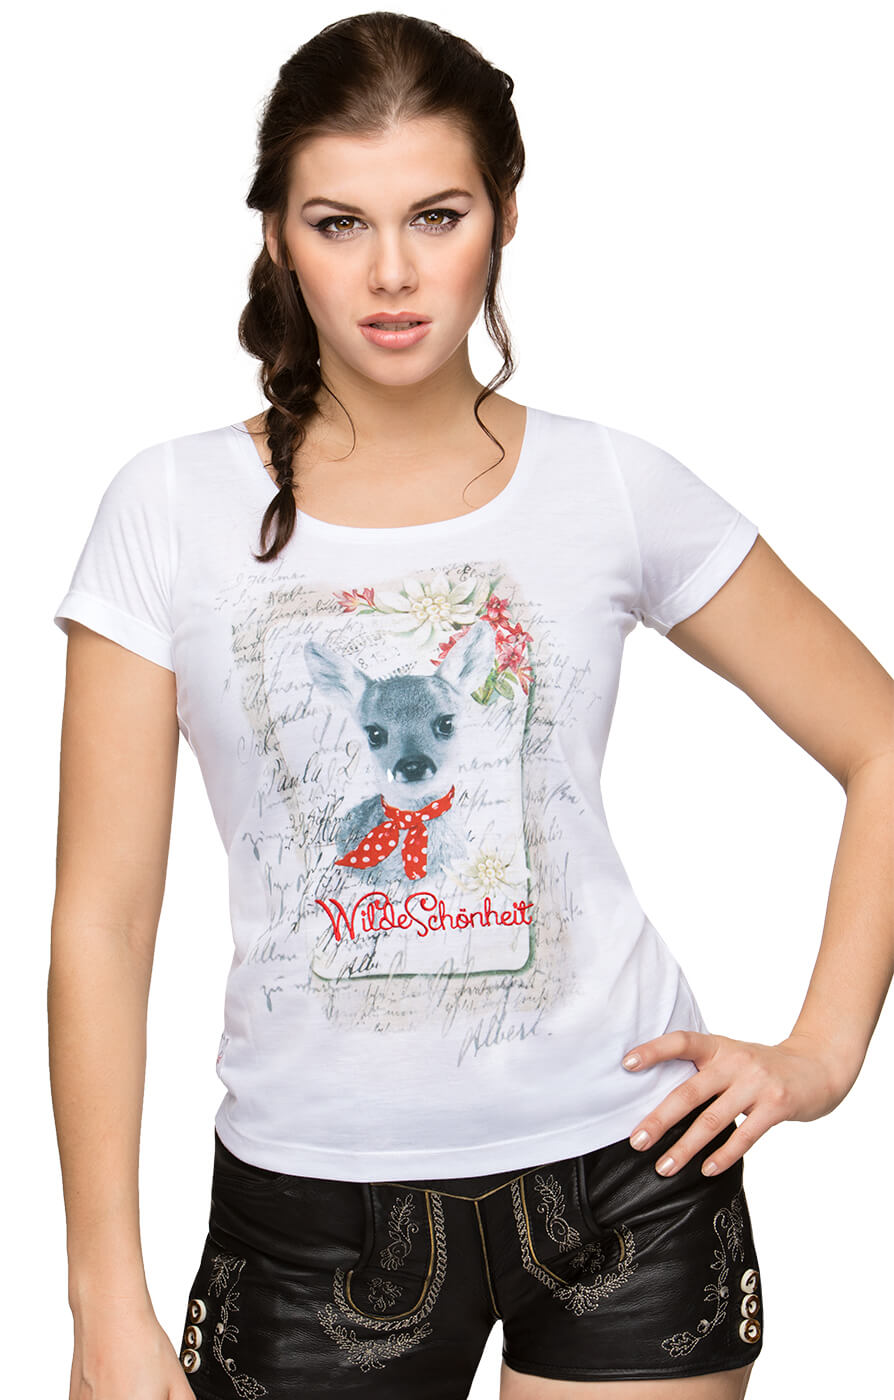 Traditional T-Shirt WILDESCHOENHEIT white von Stockerpoint